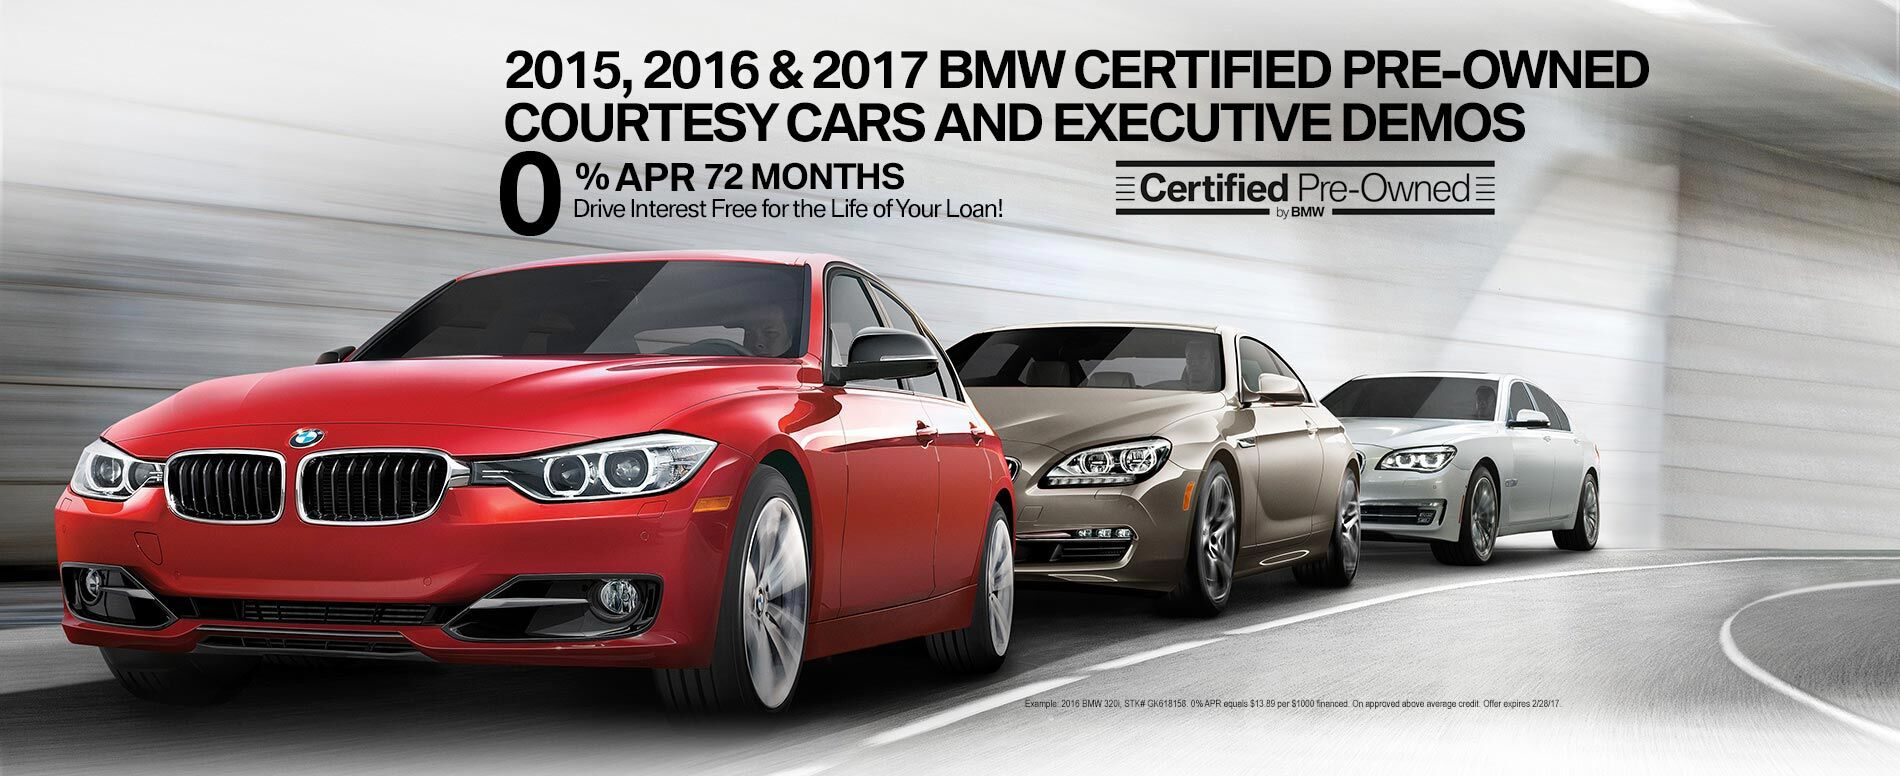 2015, _2016_&_2017_BMW_Certified_Pre-owned_Courtesy_Cars_and_Executive_Demos